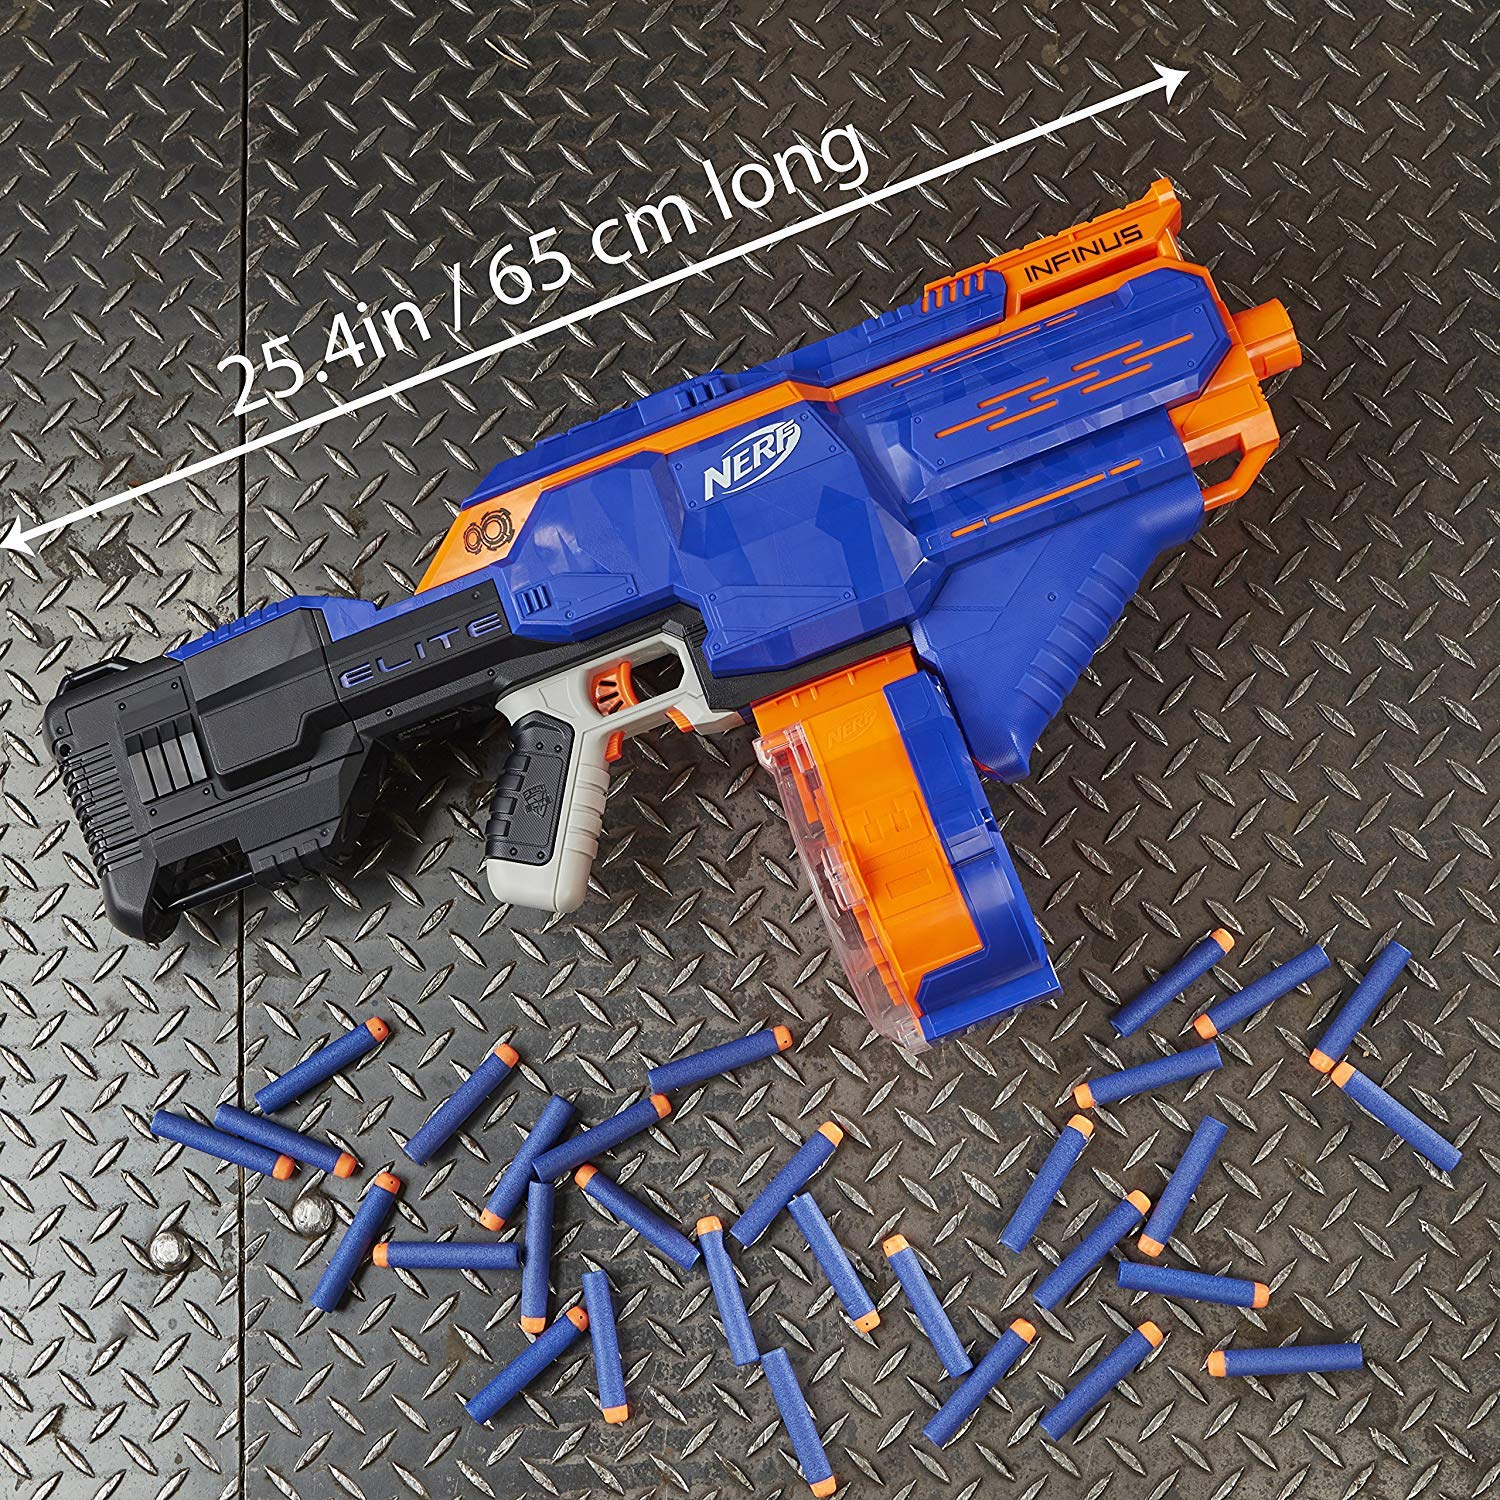 NERF Infinus N-Strike Elite Toy Motorized Blaster with Speed-Load Technology (FFP) by NERF (Image #4)